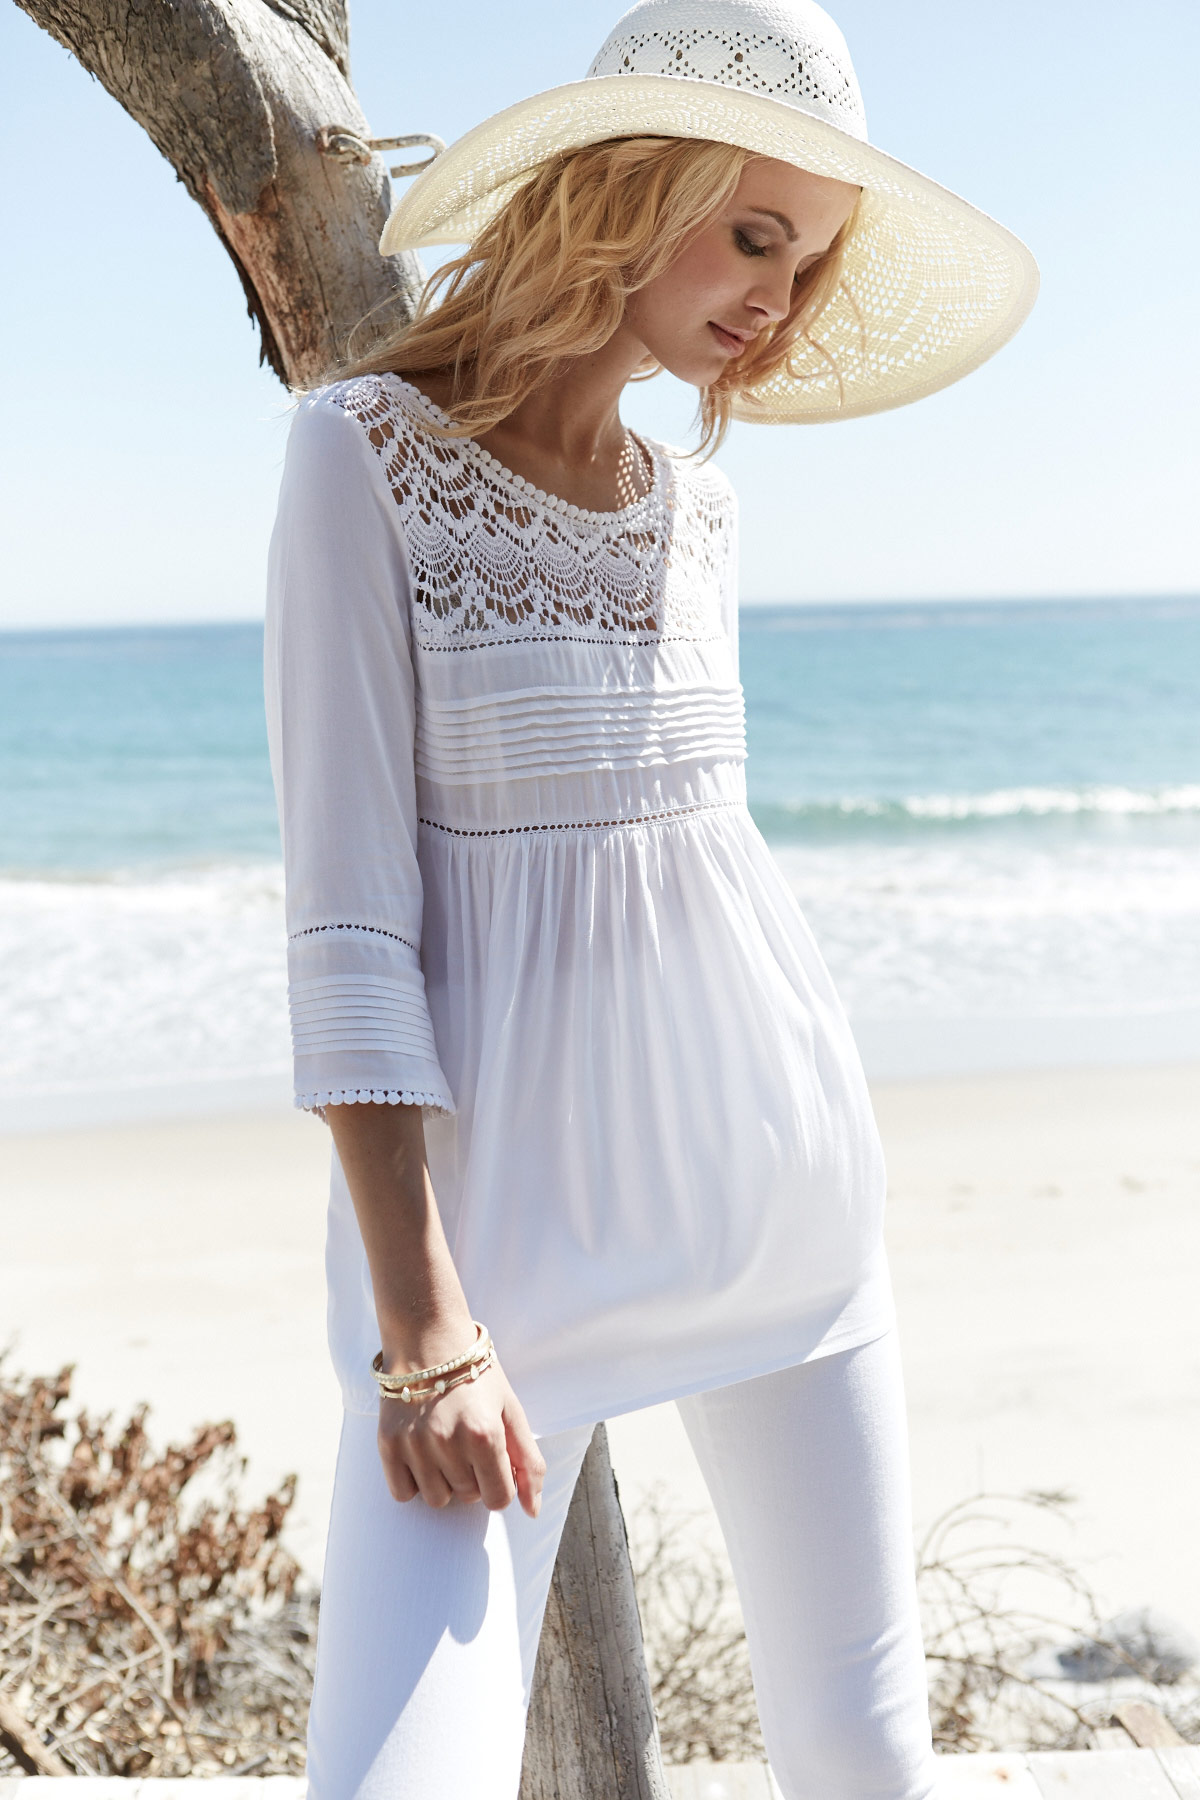 KK_Womens_Clothing_Catalog_Photographer_Resort_Wear_Summer_Mike_Henry